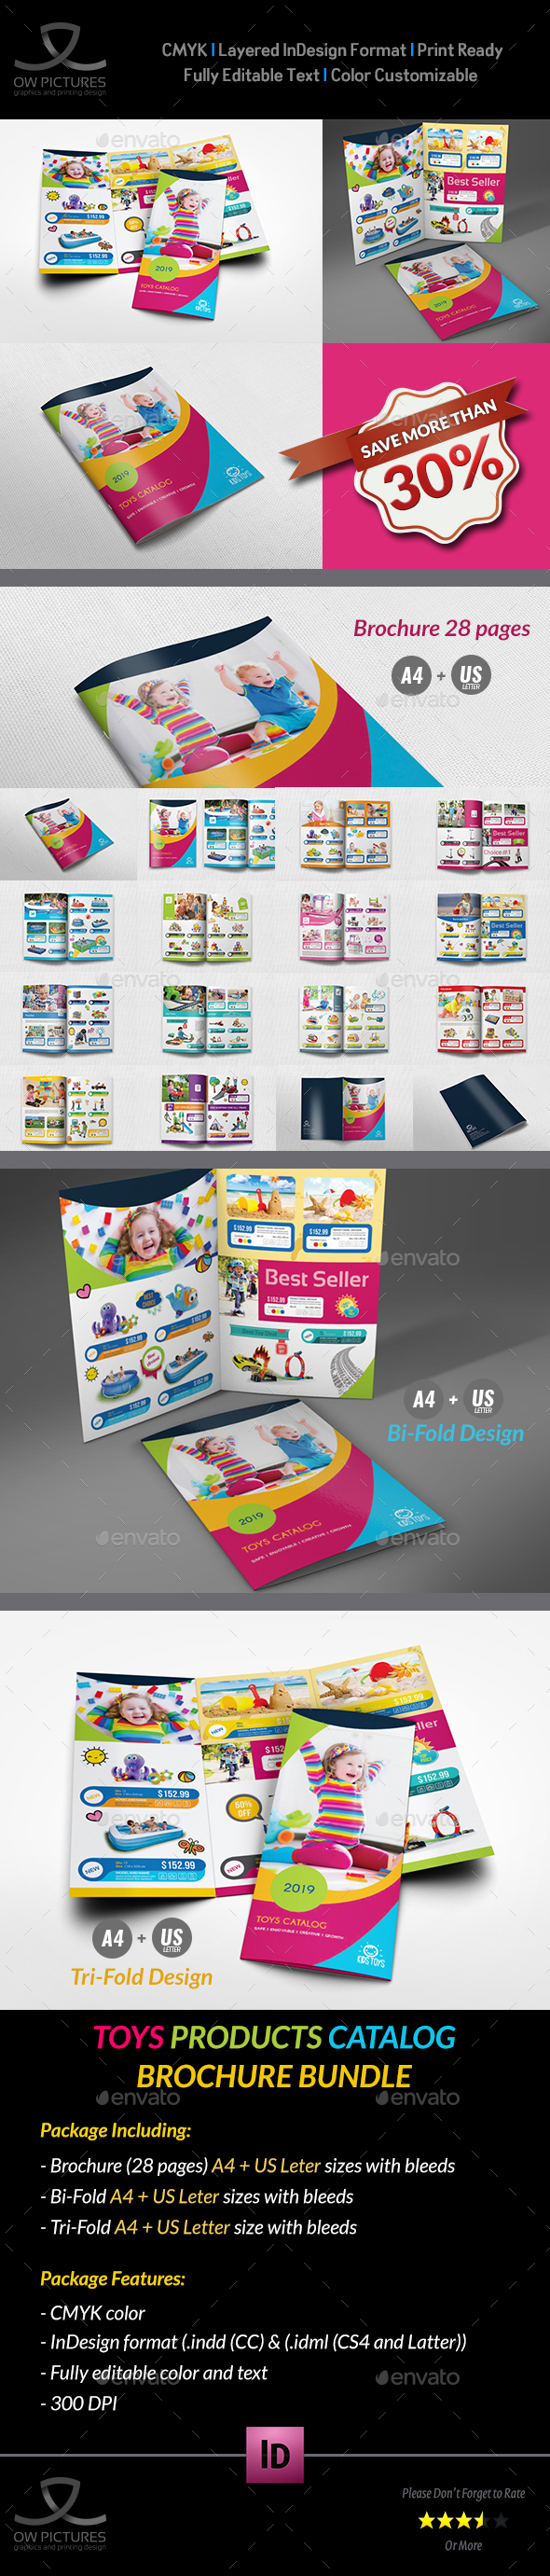 Toys Products Catalog Brochure Bundle Template - Catalogs Brochures